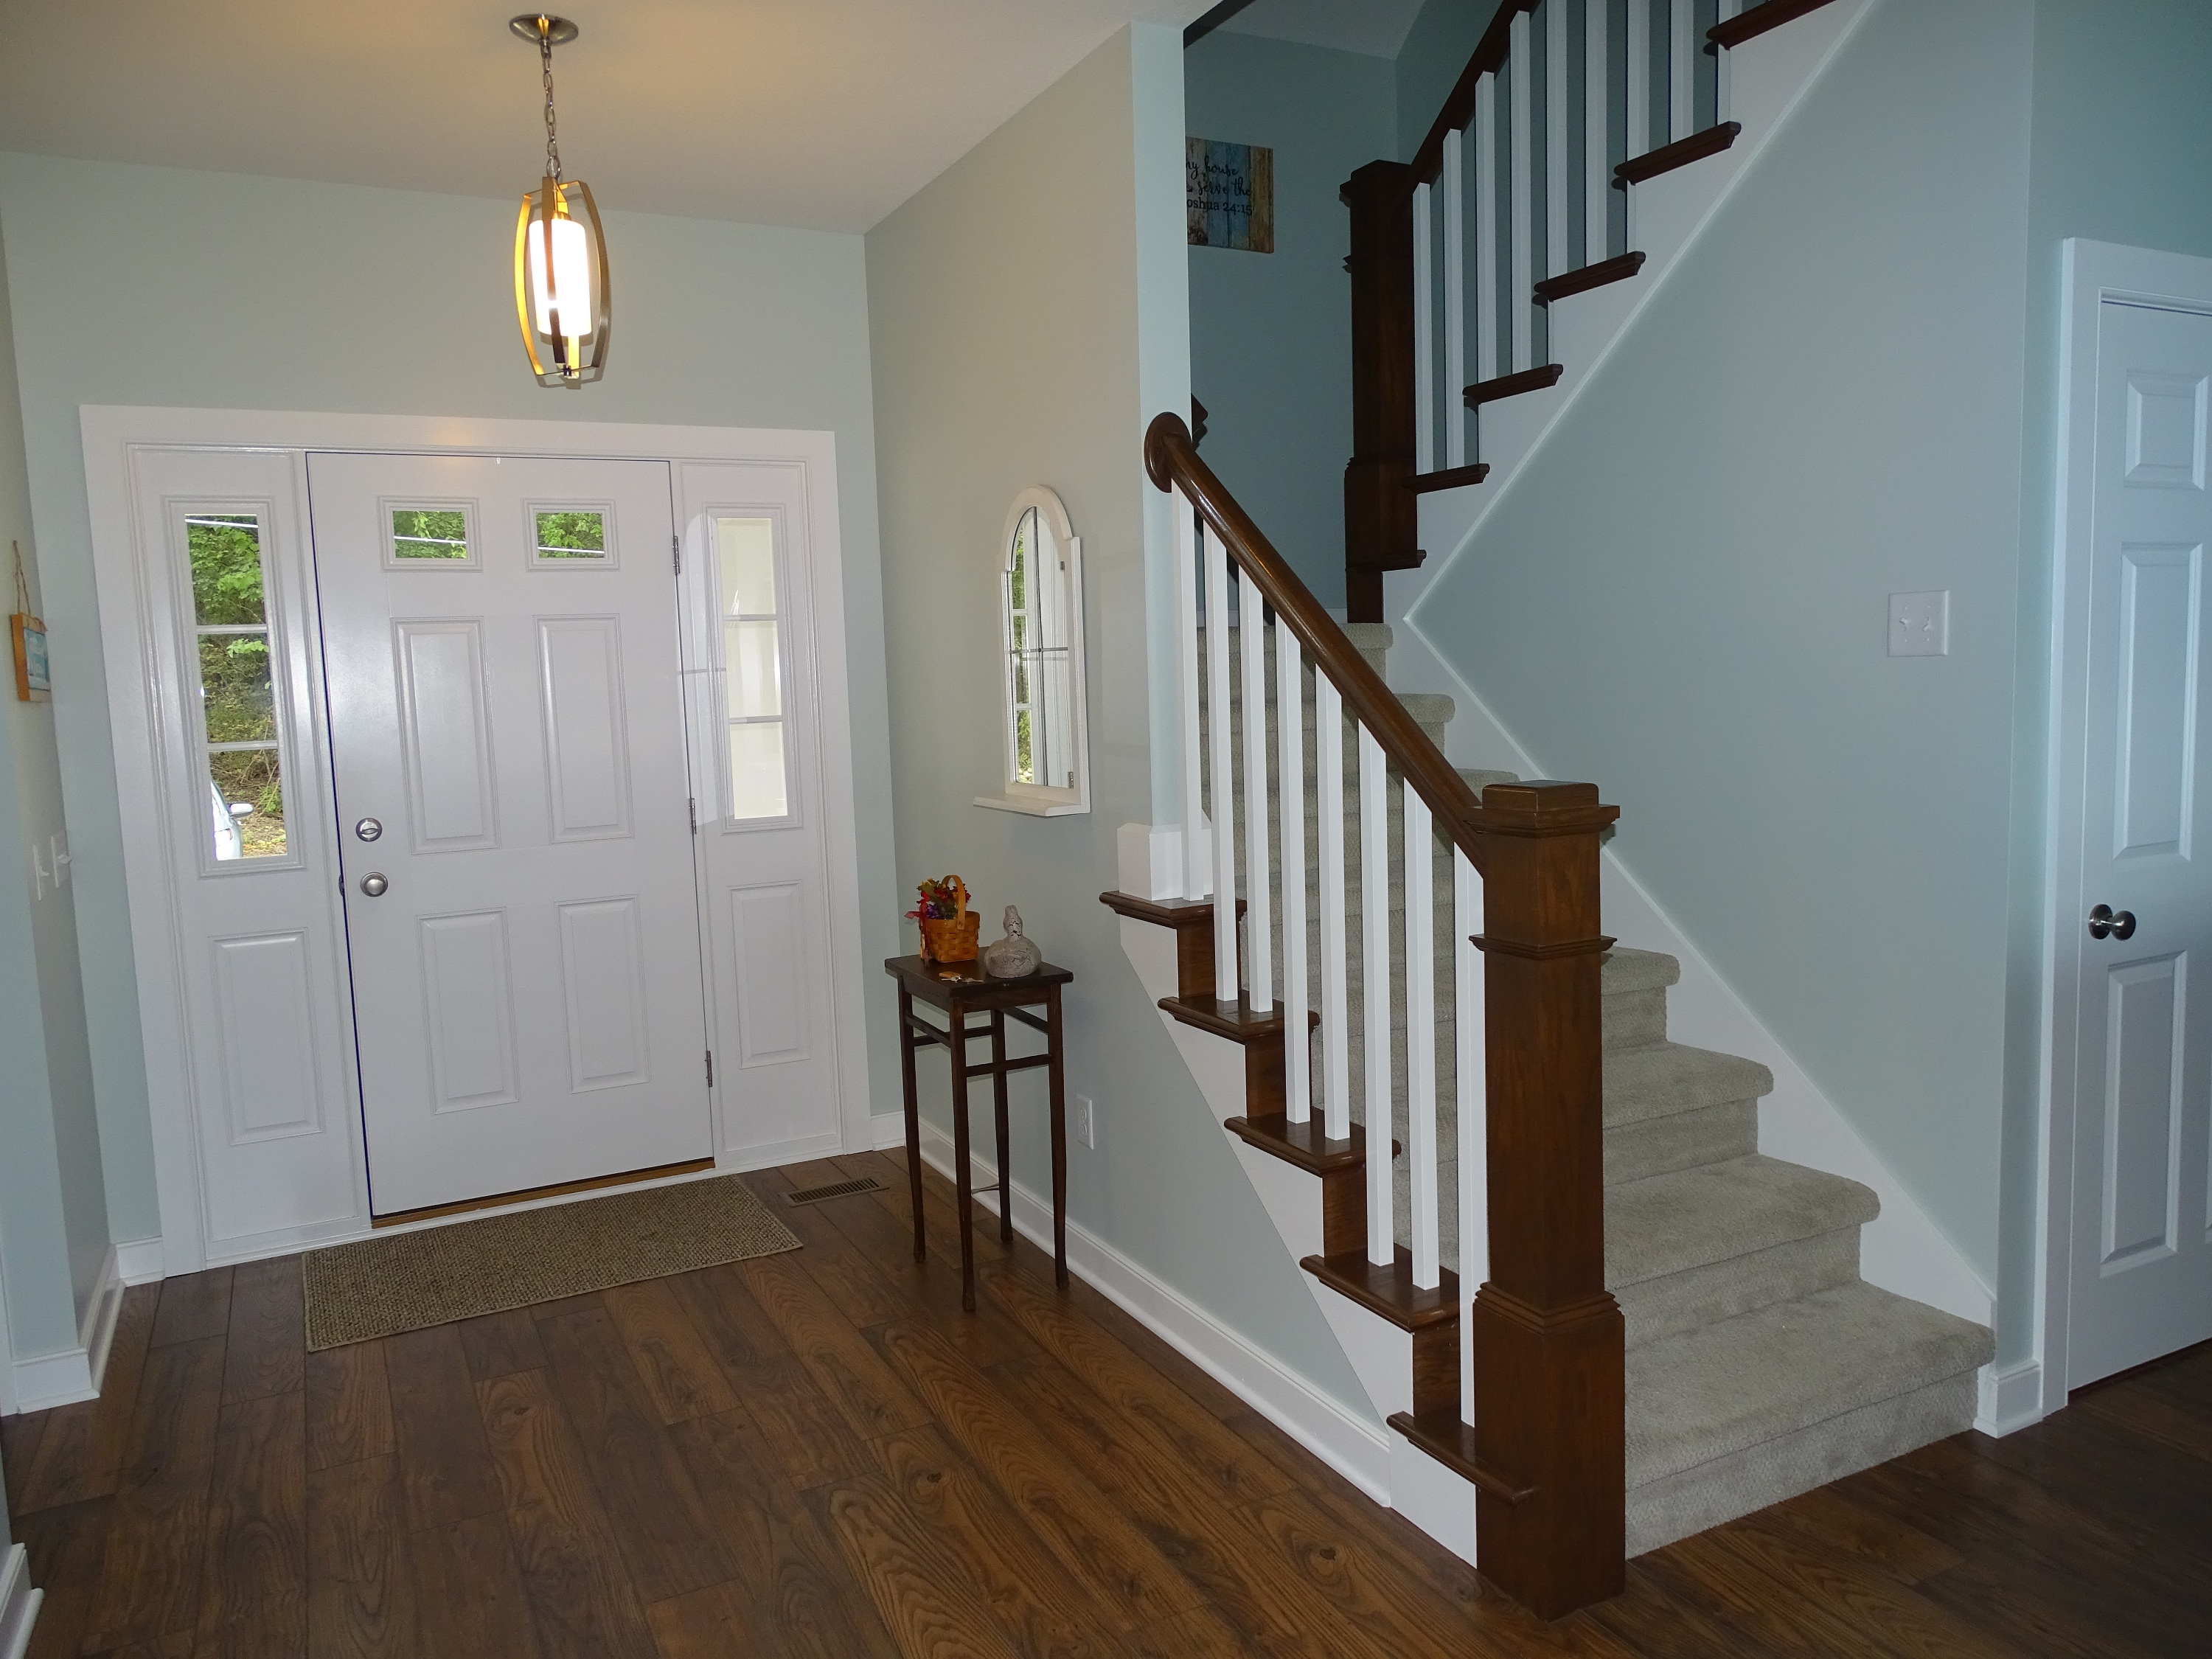 Staircase and foyer in lake home